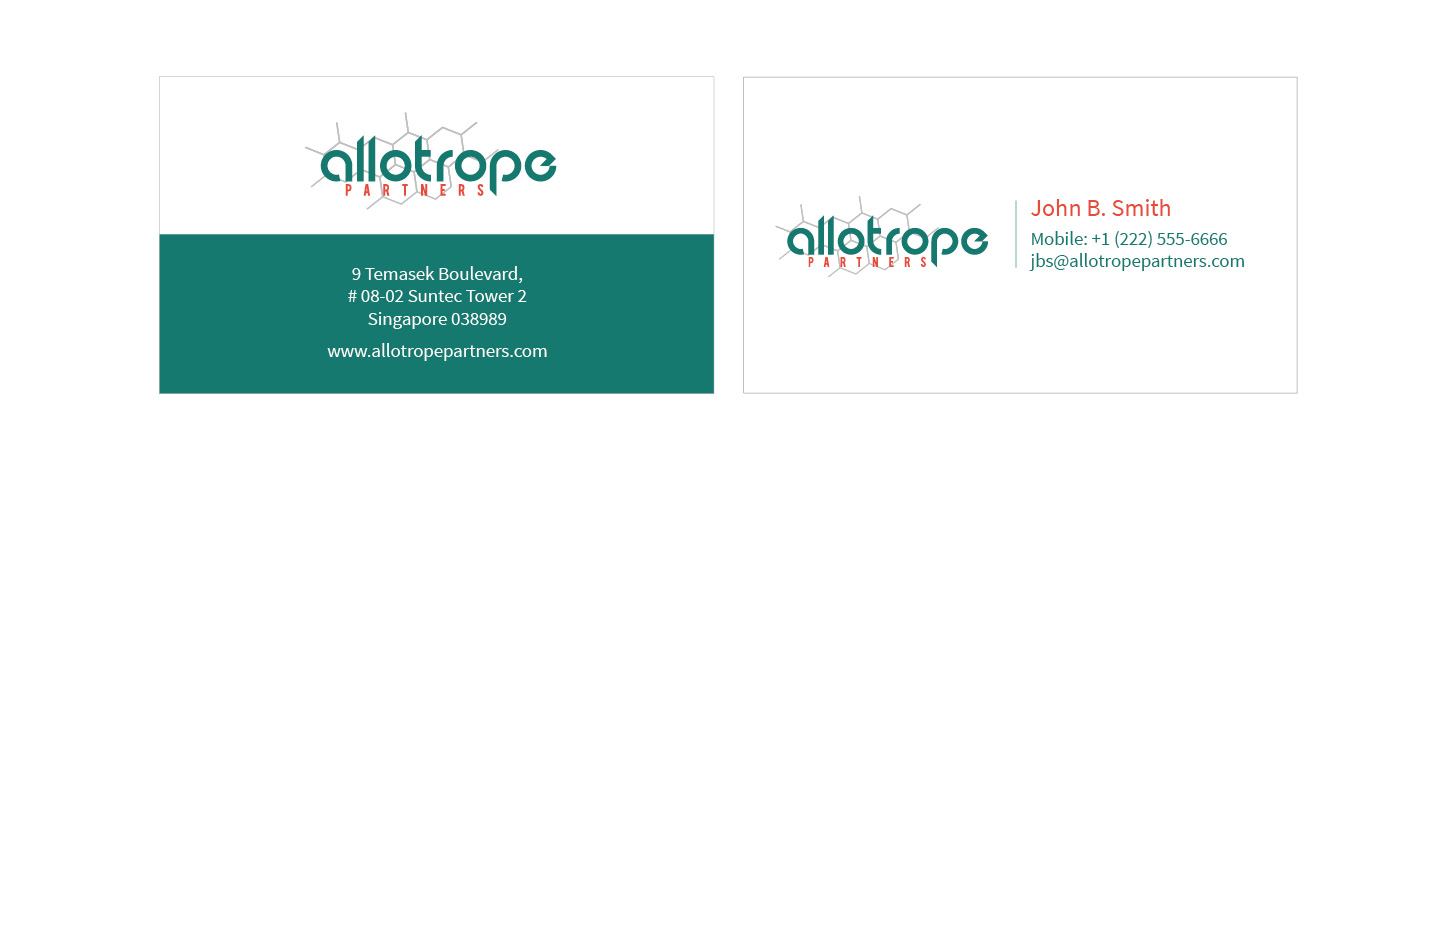 Allotrope Business Card